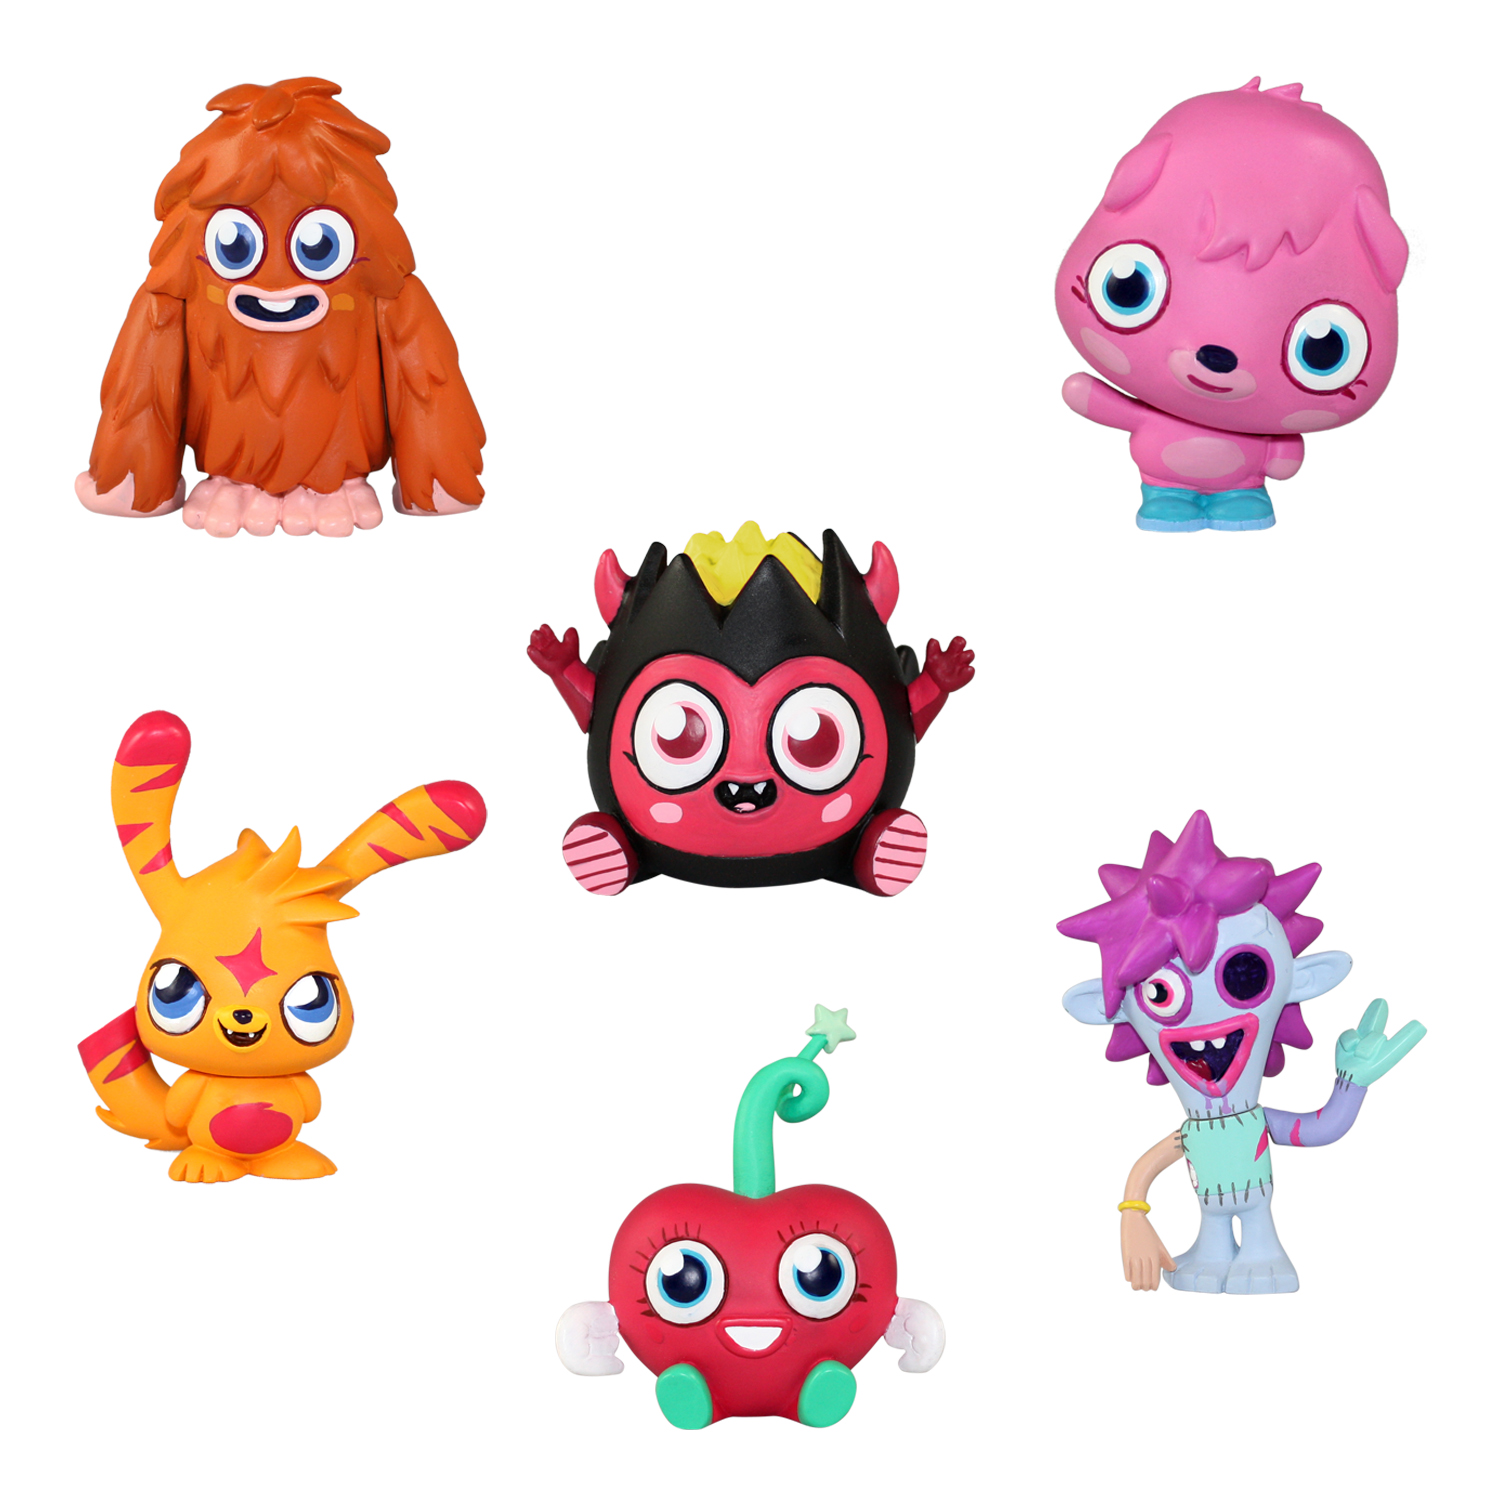 Moshi monster print out pictures Moshi Monsters Posters for sale at m